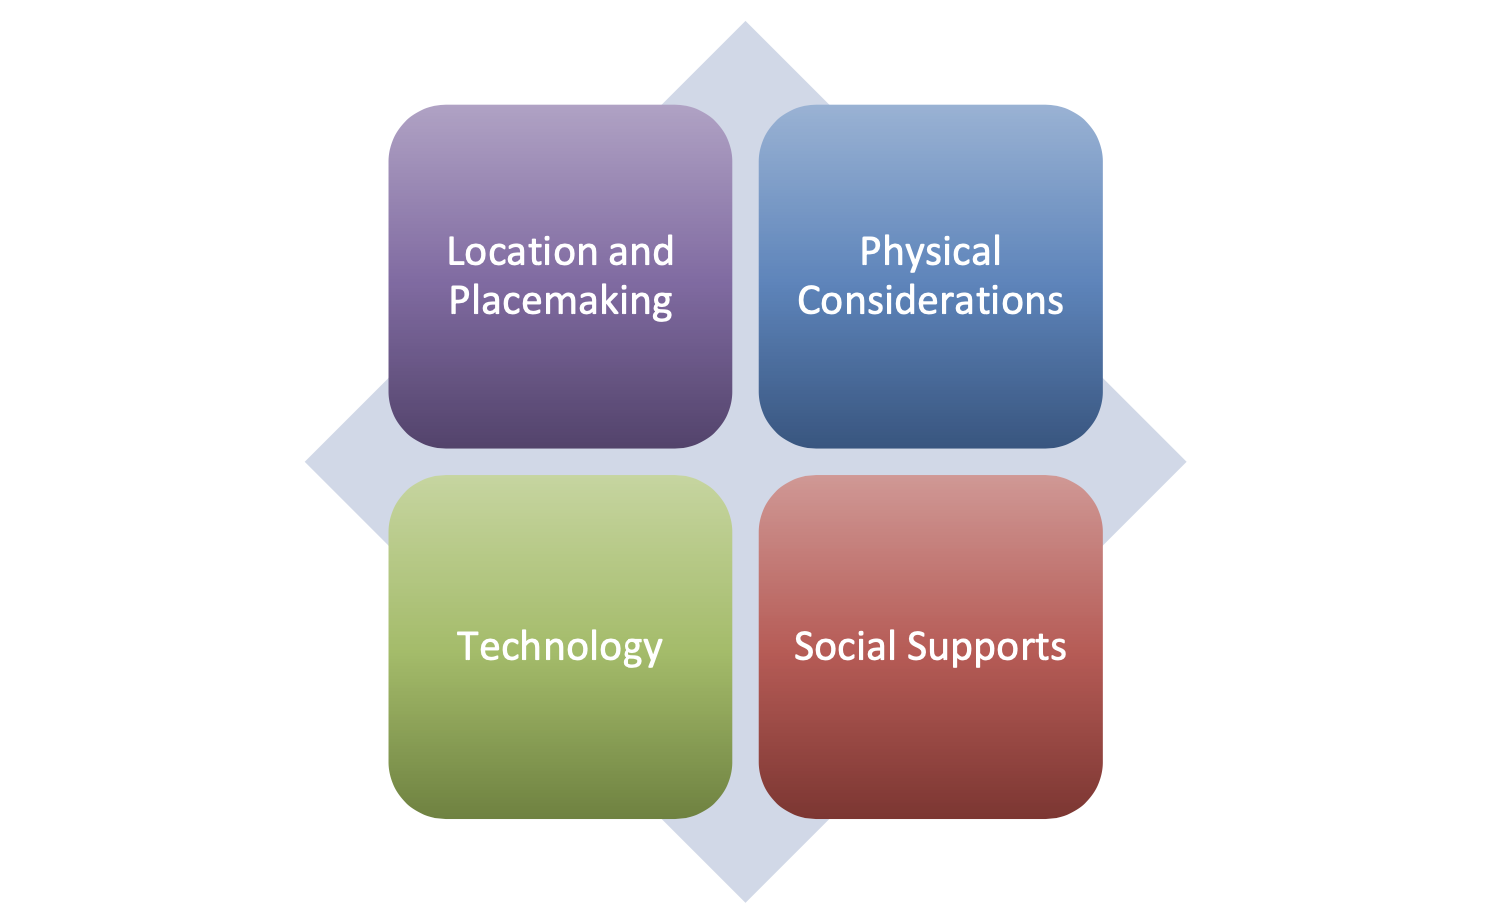 Figure 7.4 Successful residential care homes/facilities are dependent on 4 key elements